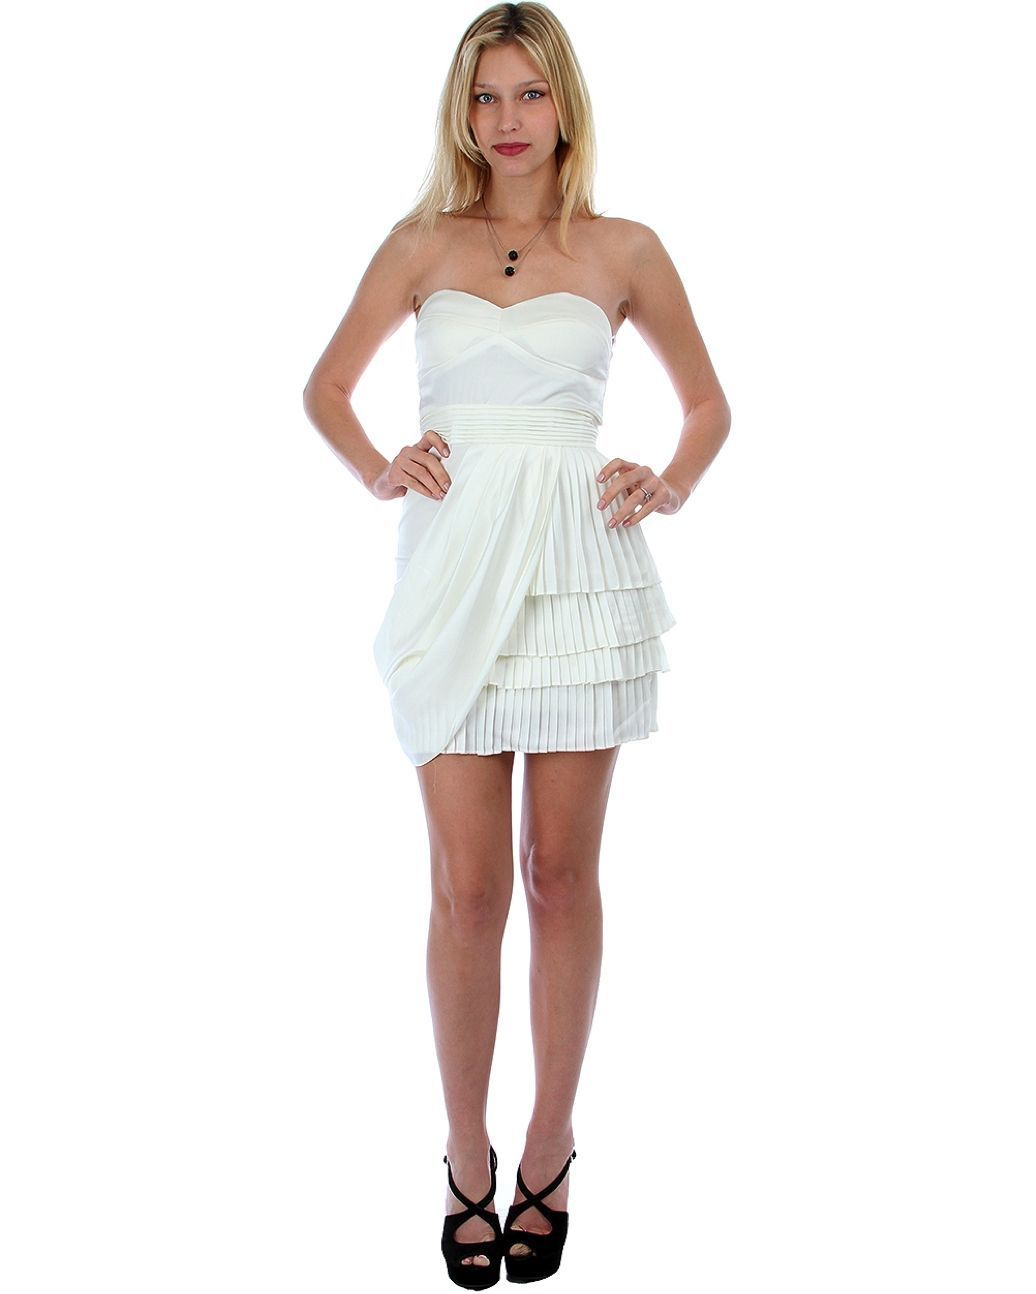 Image 2 of Sexy Juniors Strapless Ivory Tiered Draped Party Cruise Club Mini Dress - Ivory/